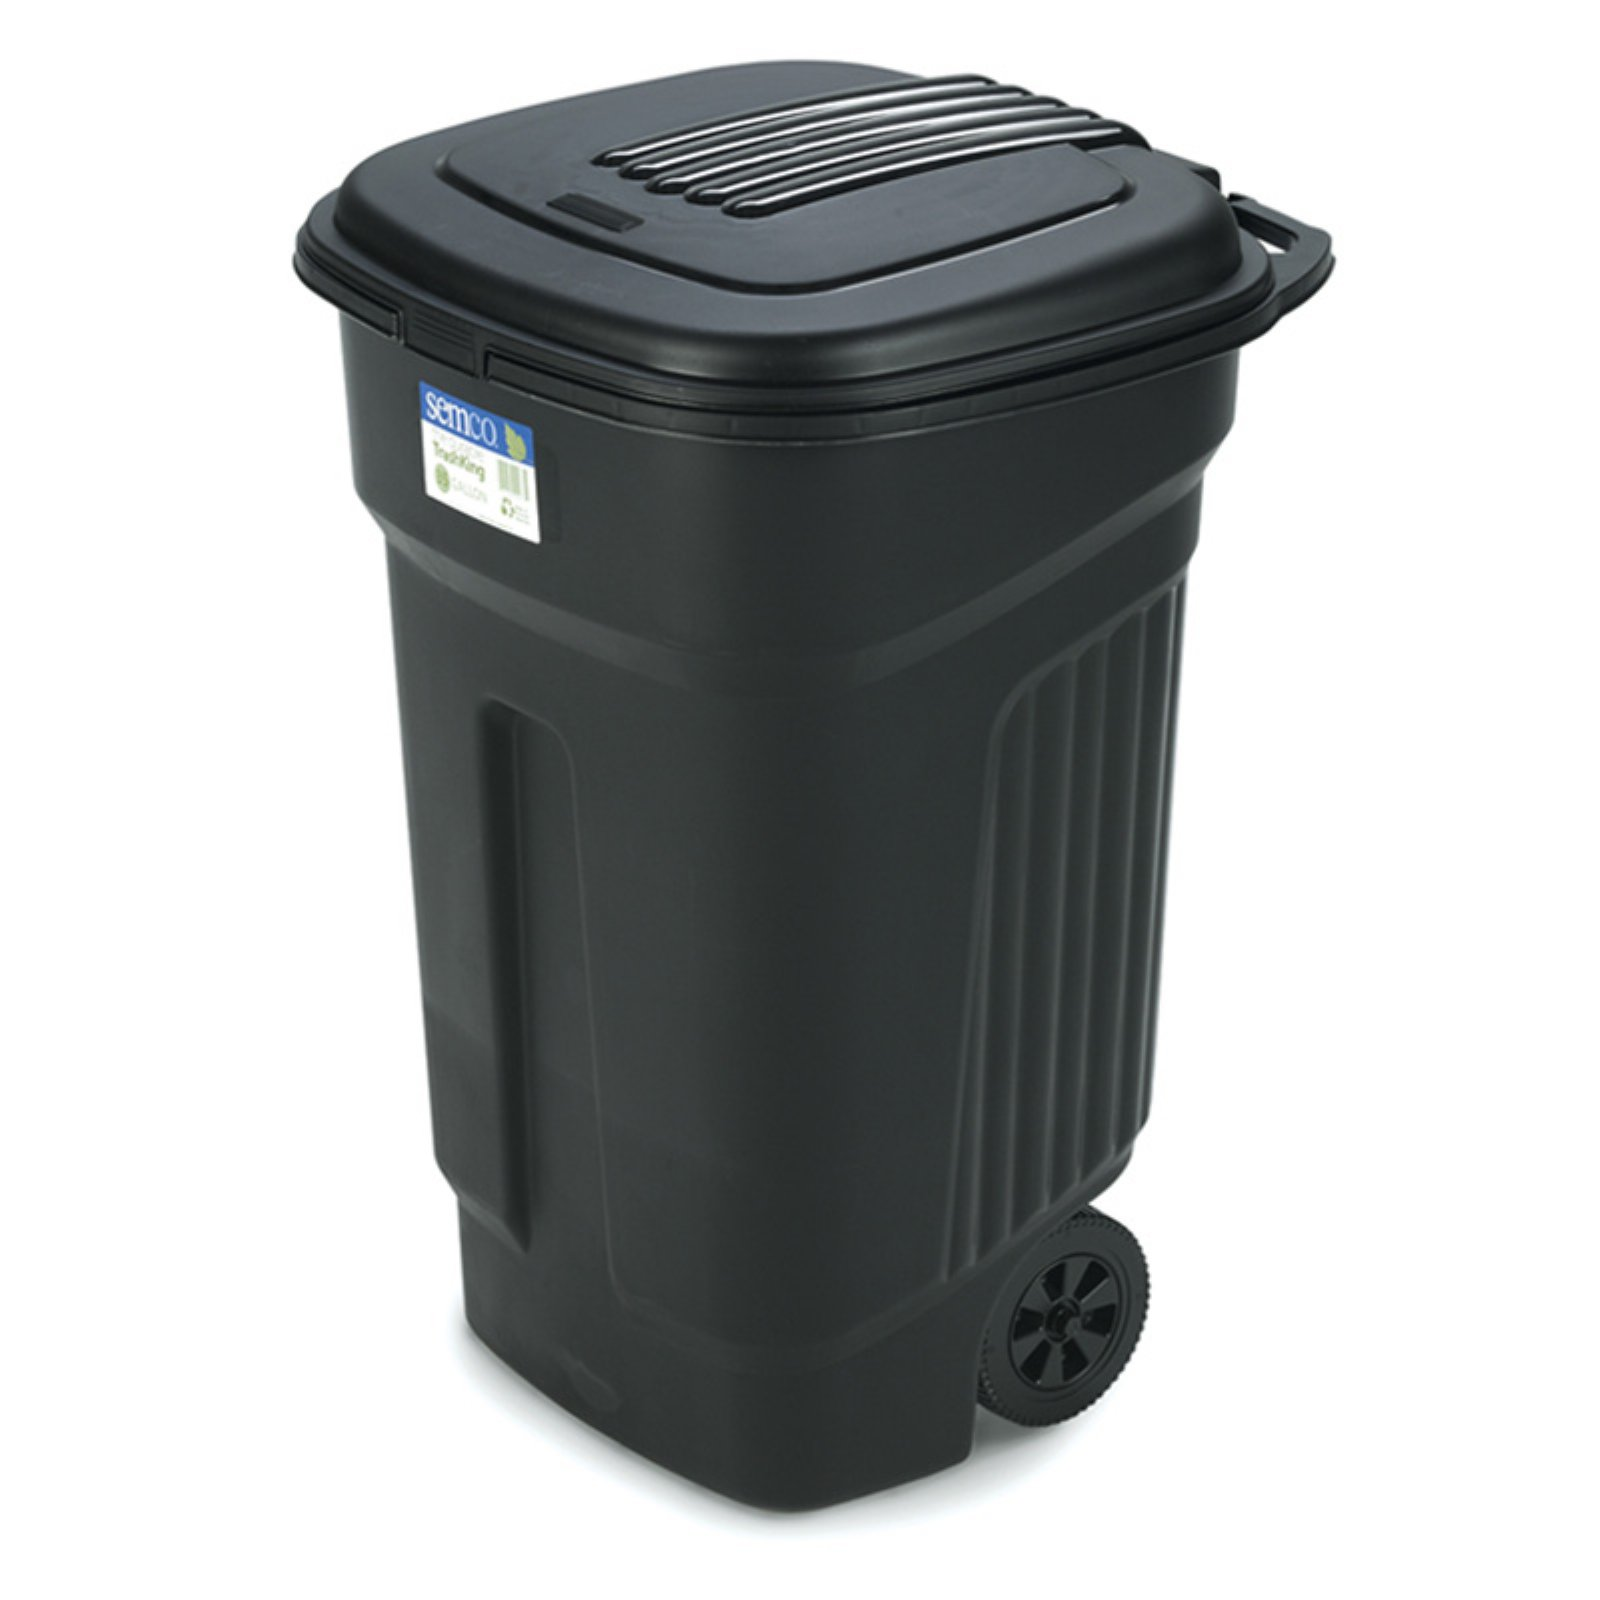 Semco 35 Gallon Injection Molded Square Trash Can with Wheels Case